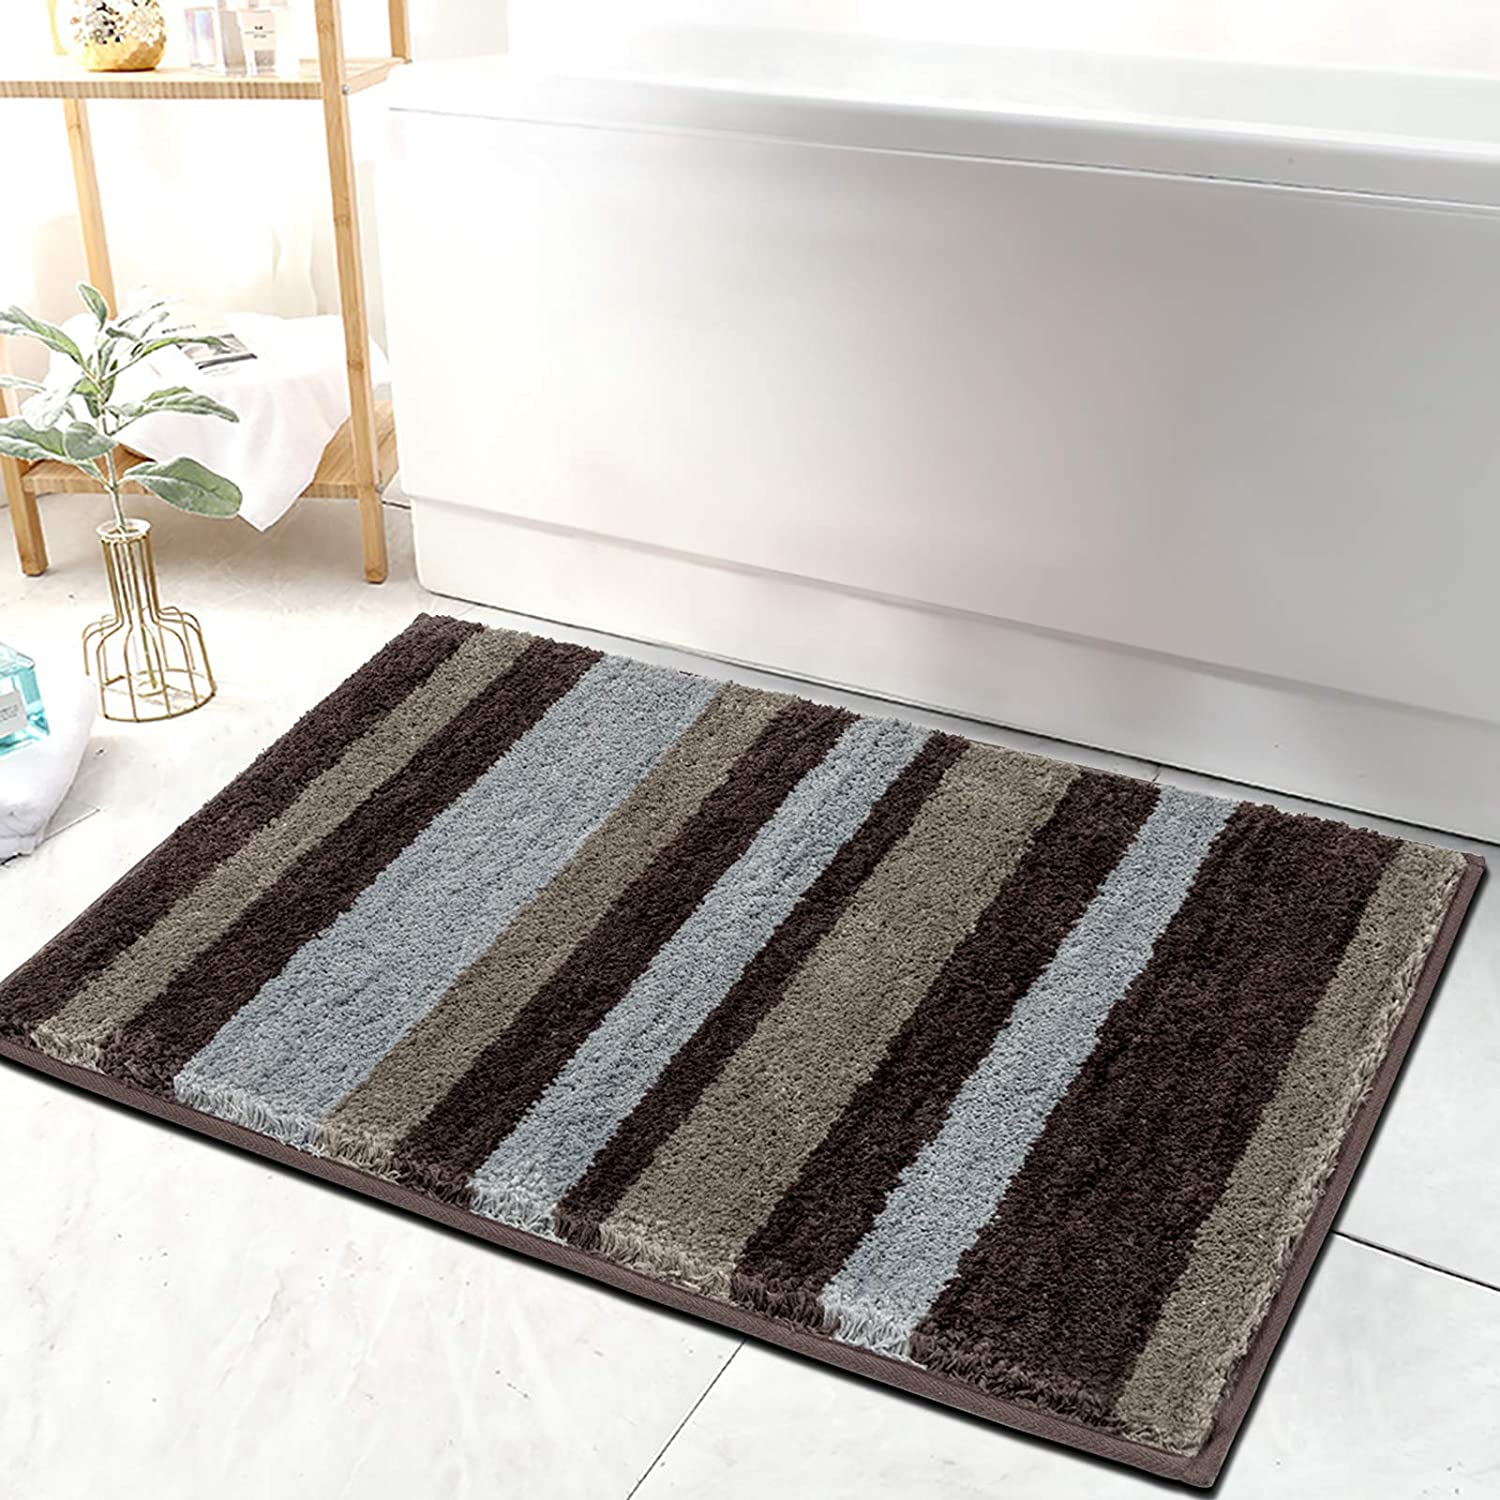 HEBE Non-Slip Bathroom Rug Shag Shower Mat Machine-Washable Bath Mats with Water Absorbent Soft Microfibers (26x18 inch)